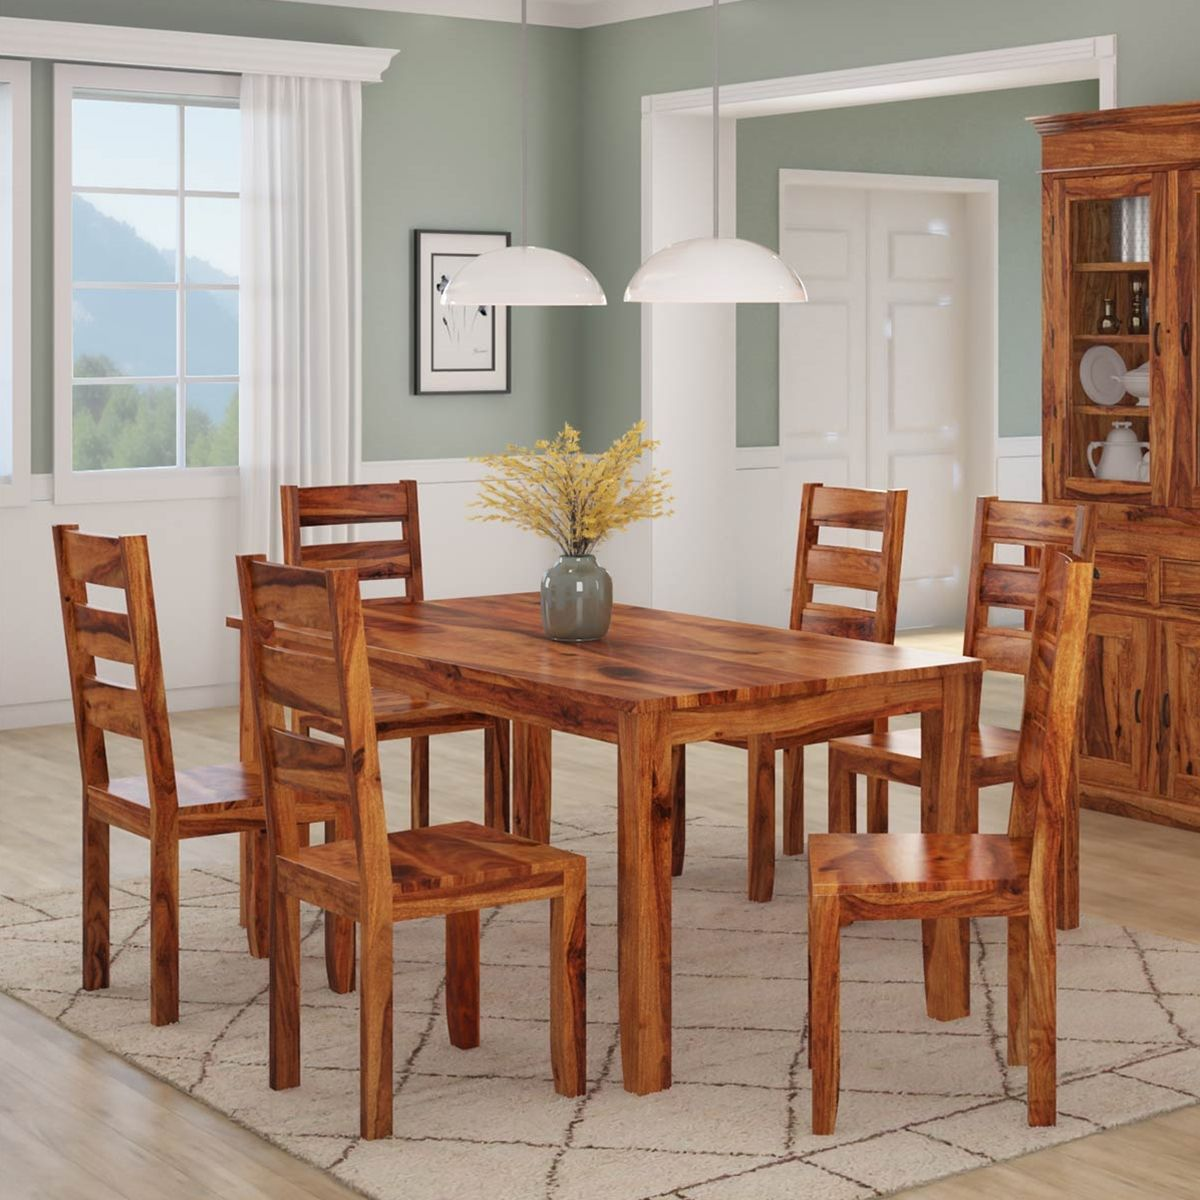 Cariboo Contemporary Rustic Solid Wood Dining Table And Chair Set Solid Wood Dining Table Rustic Solid Wood Dining Table Simple Dining Table Solid wood dining room chairs